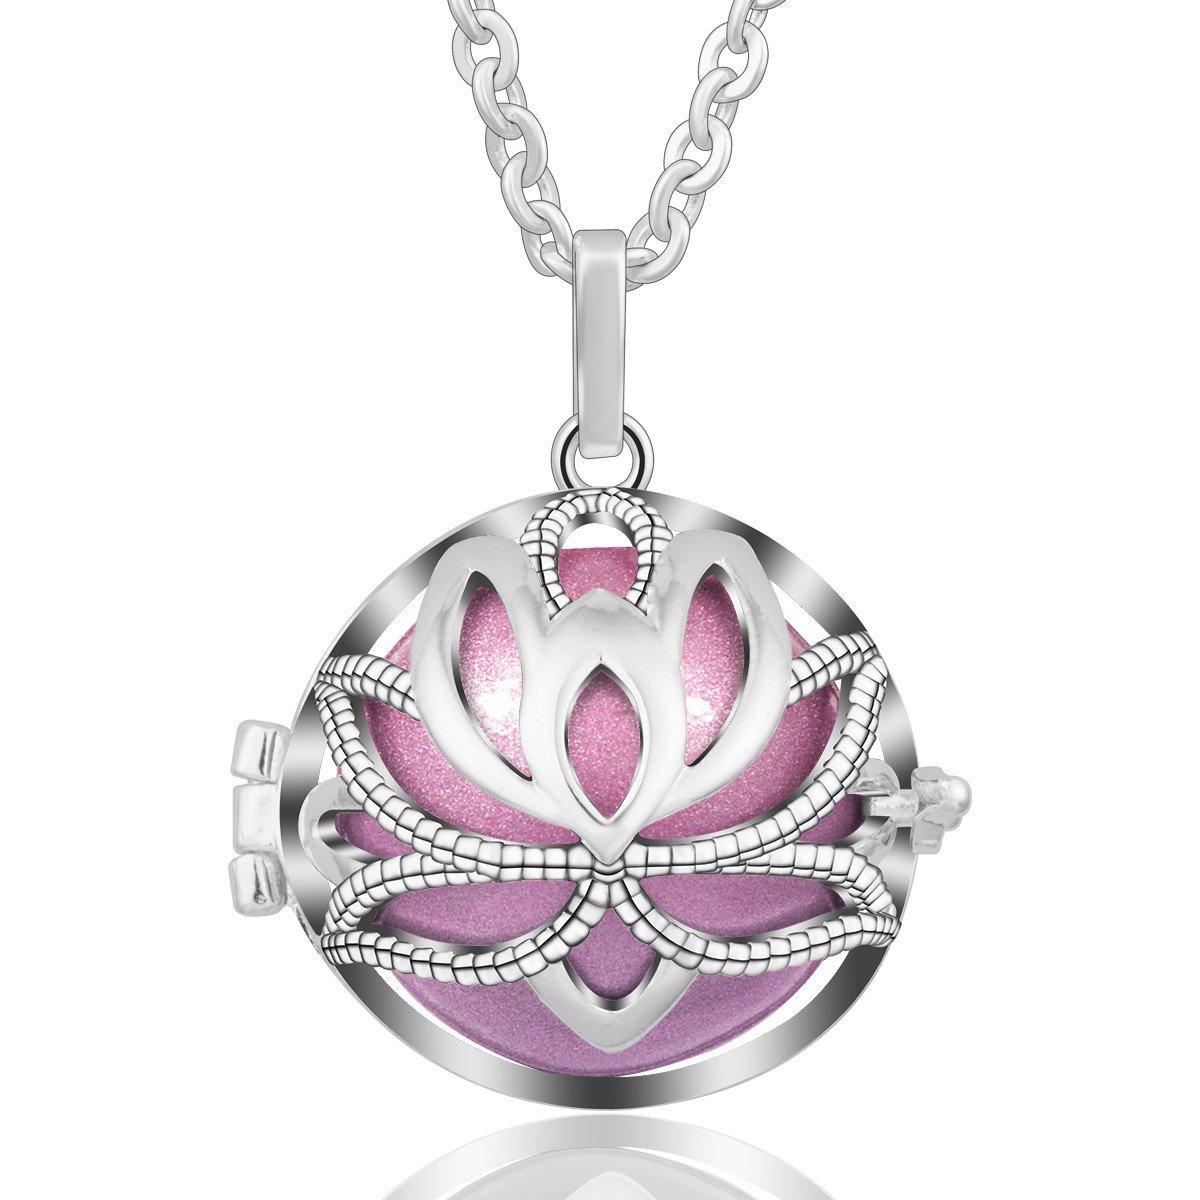 EUDORA Harmony Bola Necklace Yoga Lotus Music Chime Pendant Gift for Mom angel jewelry, 30'' Chain Violet Red by EUDORA